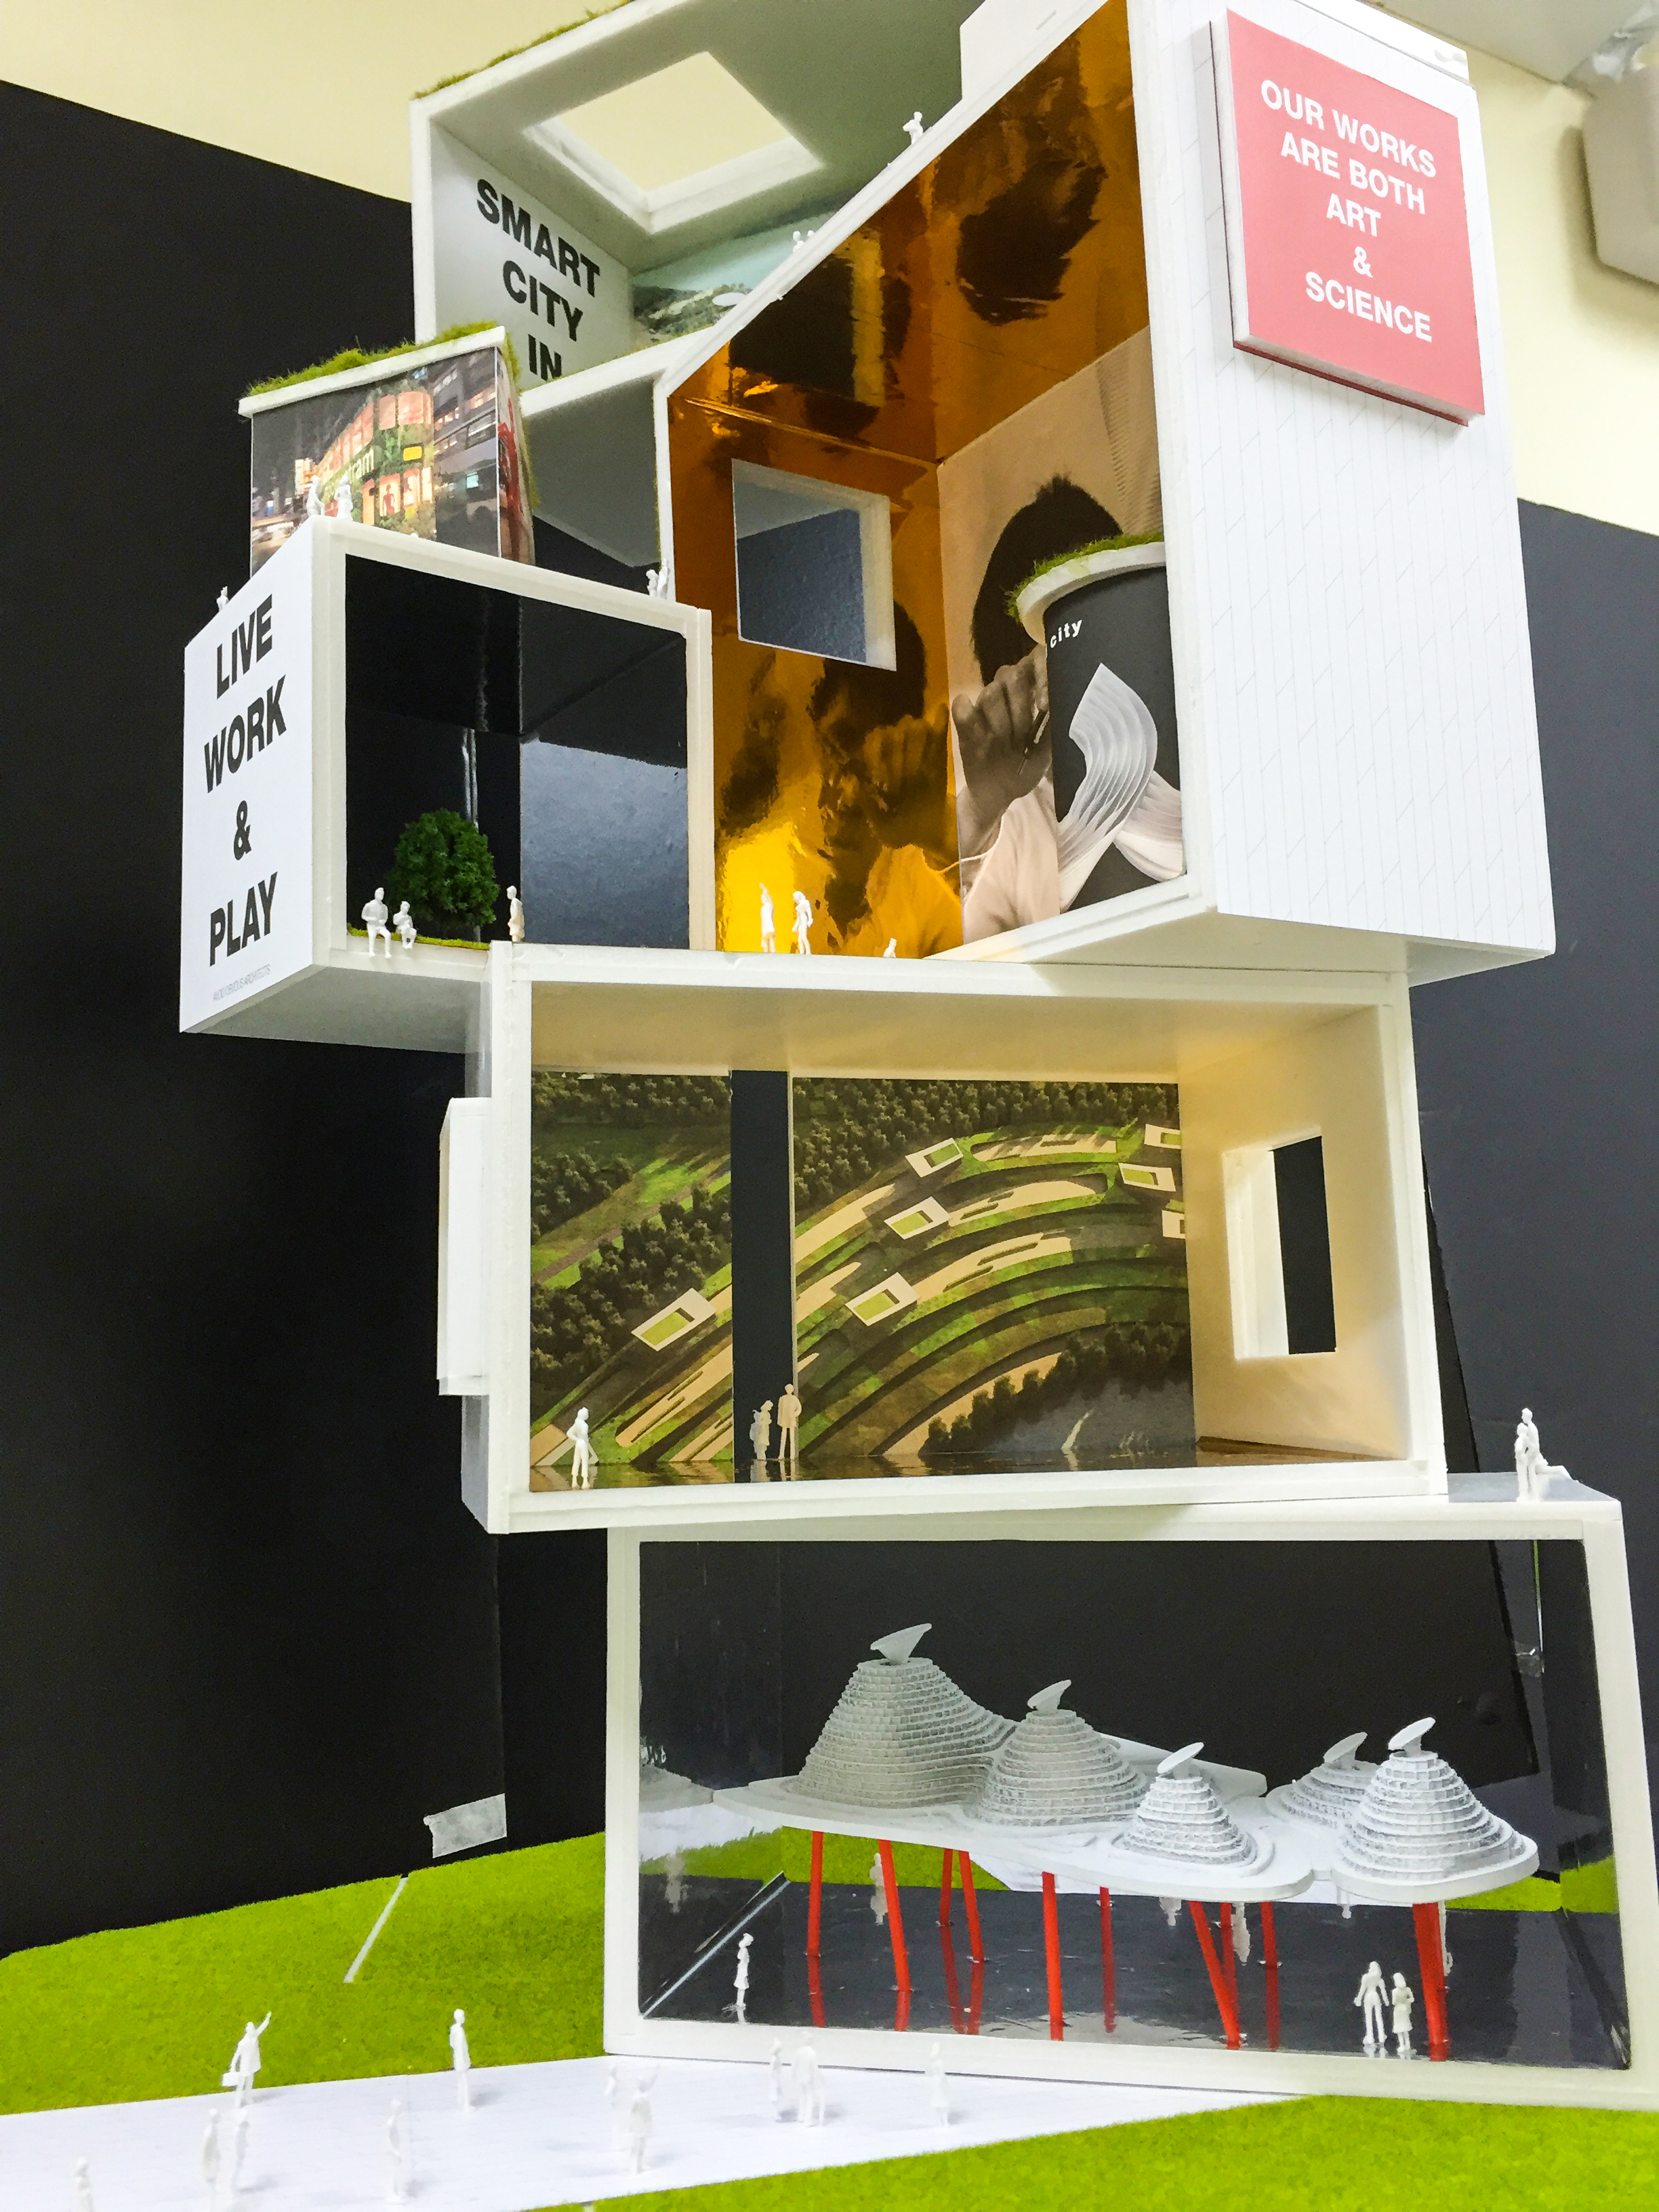 model making, avoid obvious, green, sustainable, architect, architecture, museum, recycled, green